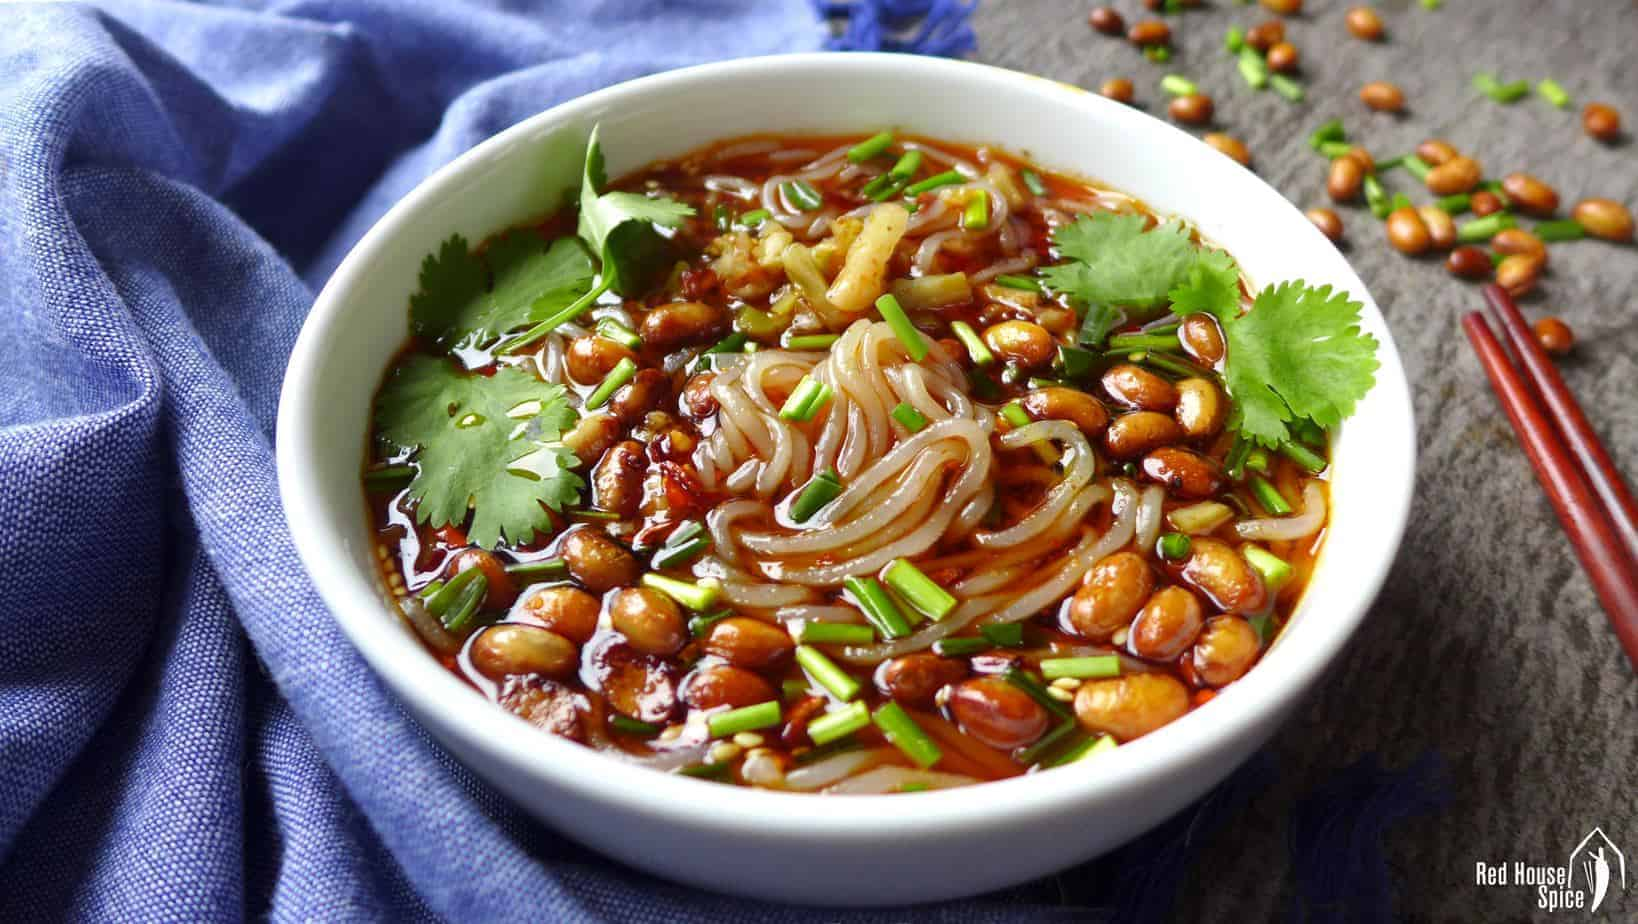 Hot and sour glass noodle soup (酸辣粉)